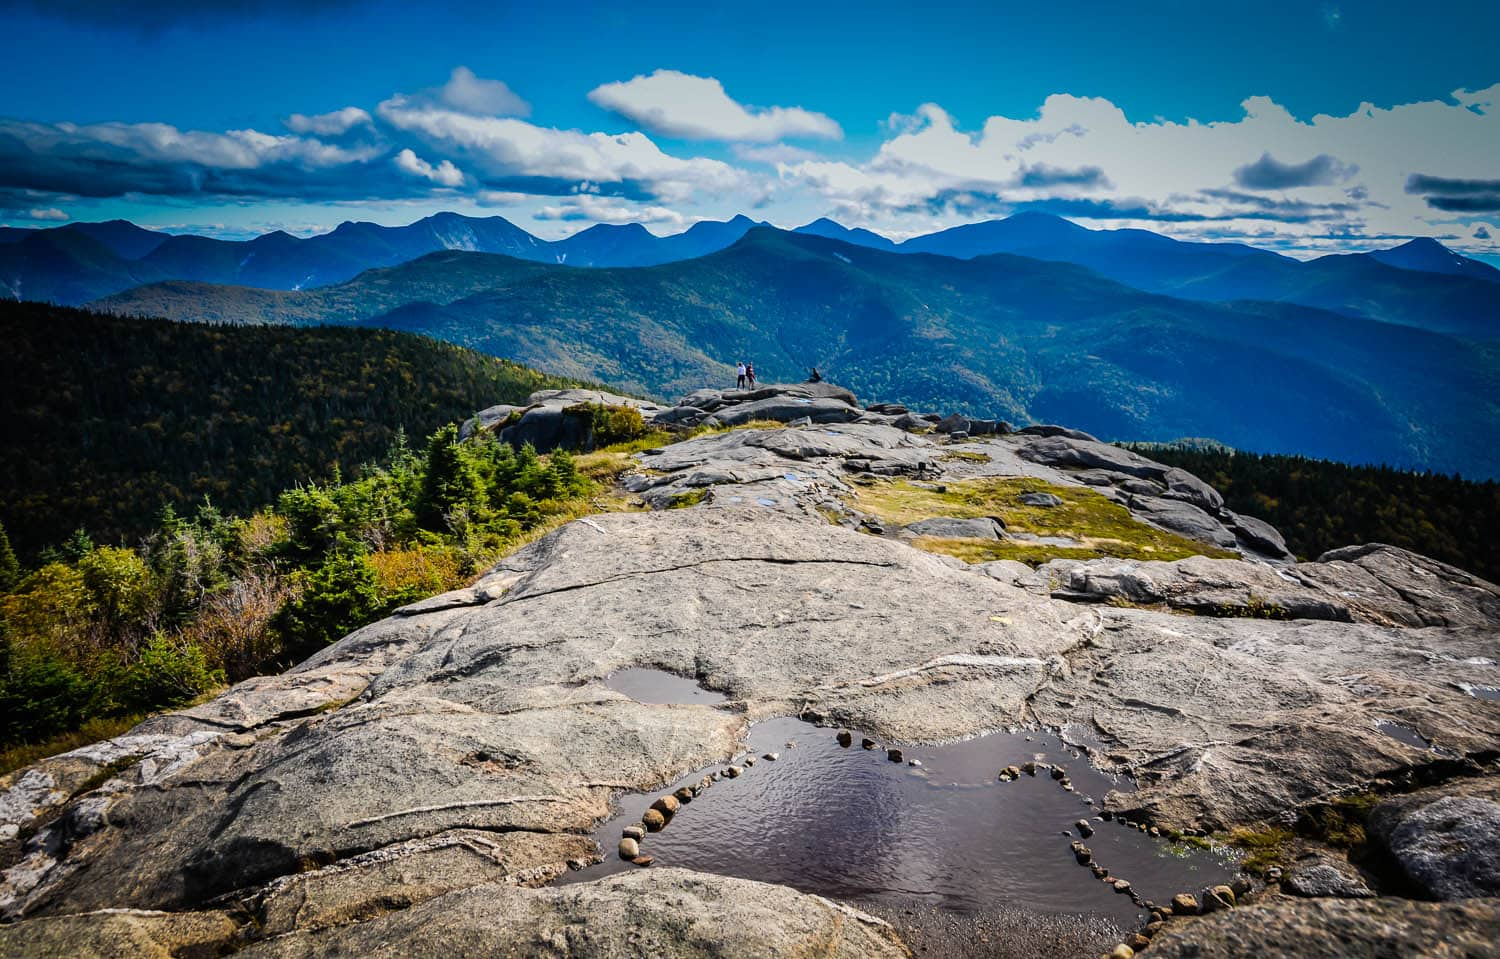 Peak Bagging Cascade Mountain - The Easiest of Adirondack High Peaks